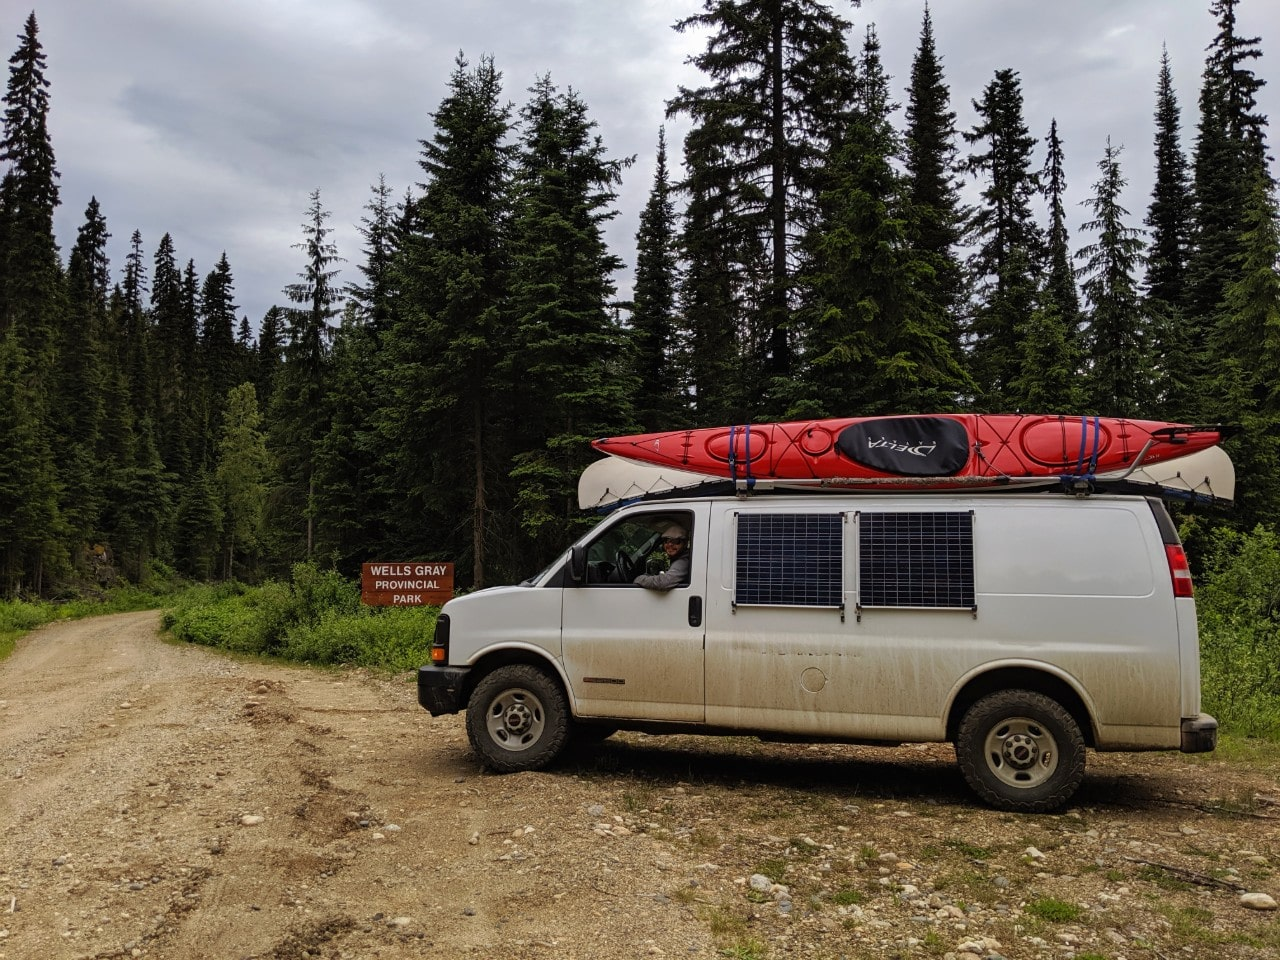 White van with kayaks and canoe on gravel road next to wooden Wells Gray Provincial Park sign